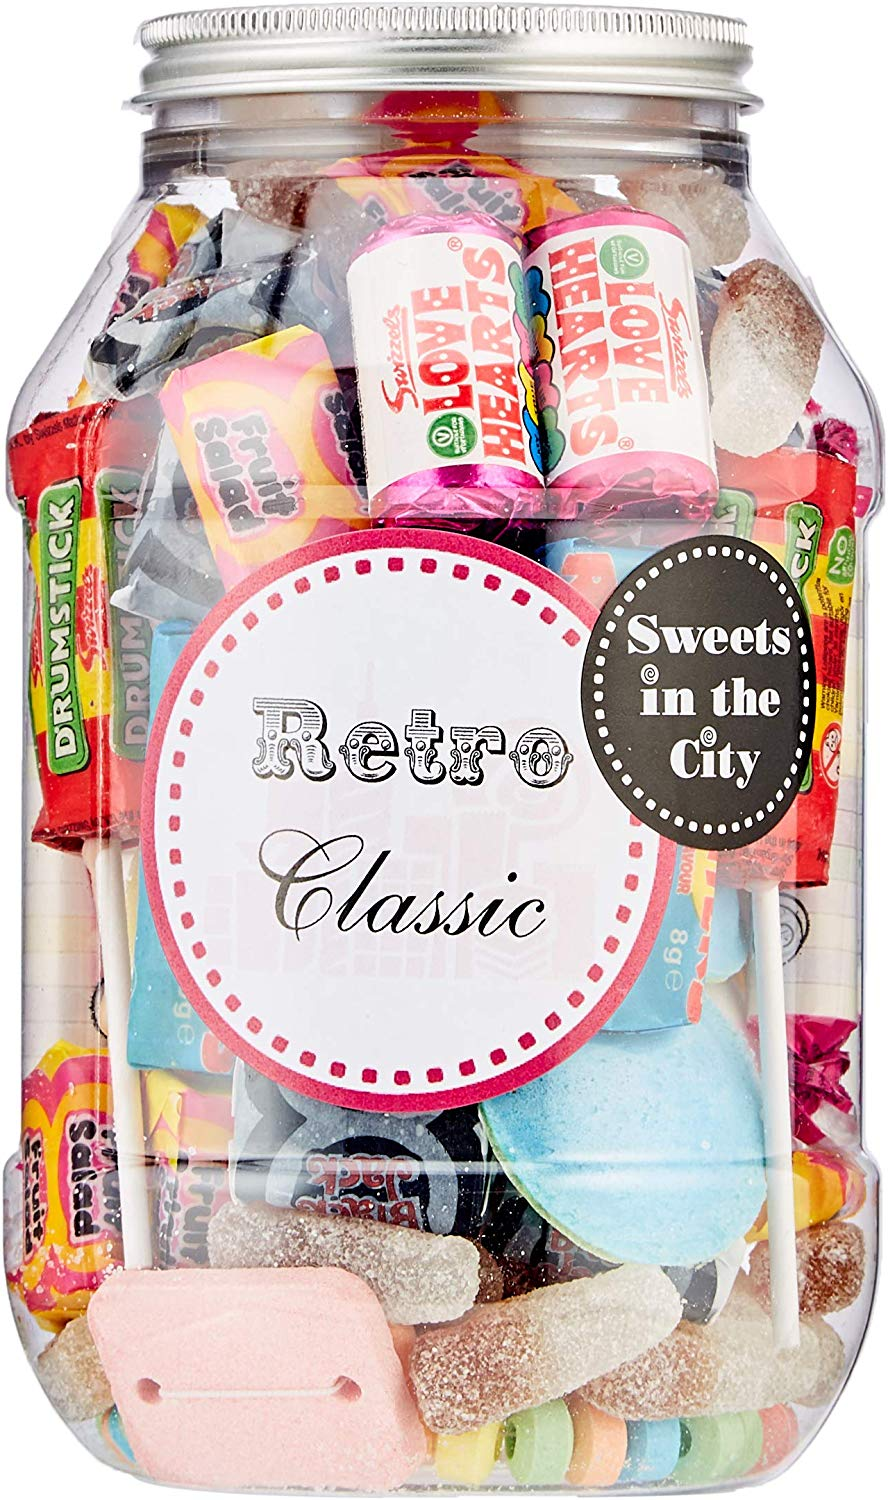 Sweets in the City Retro Classic Jar